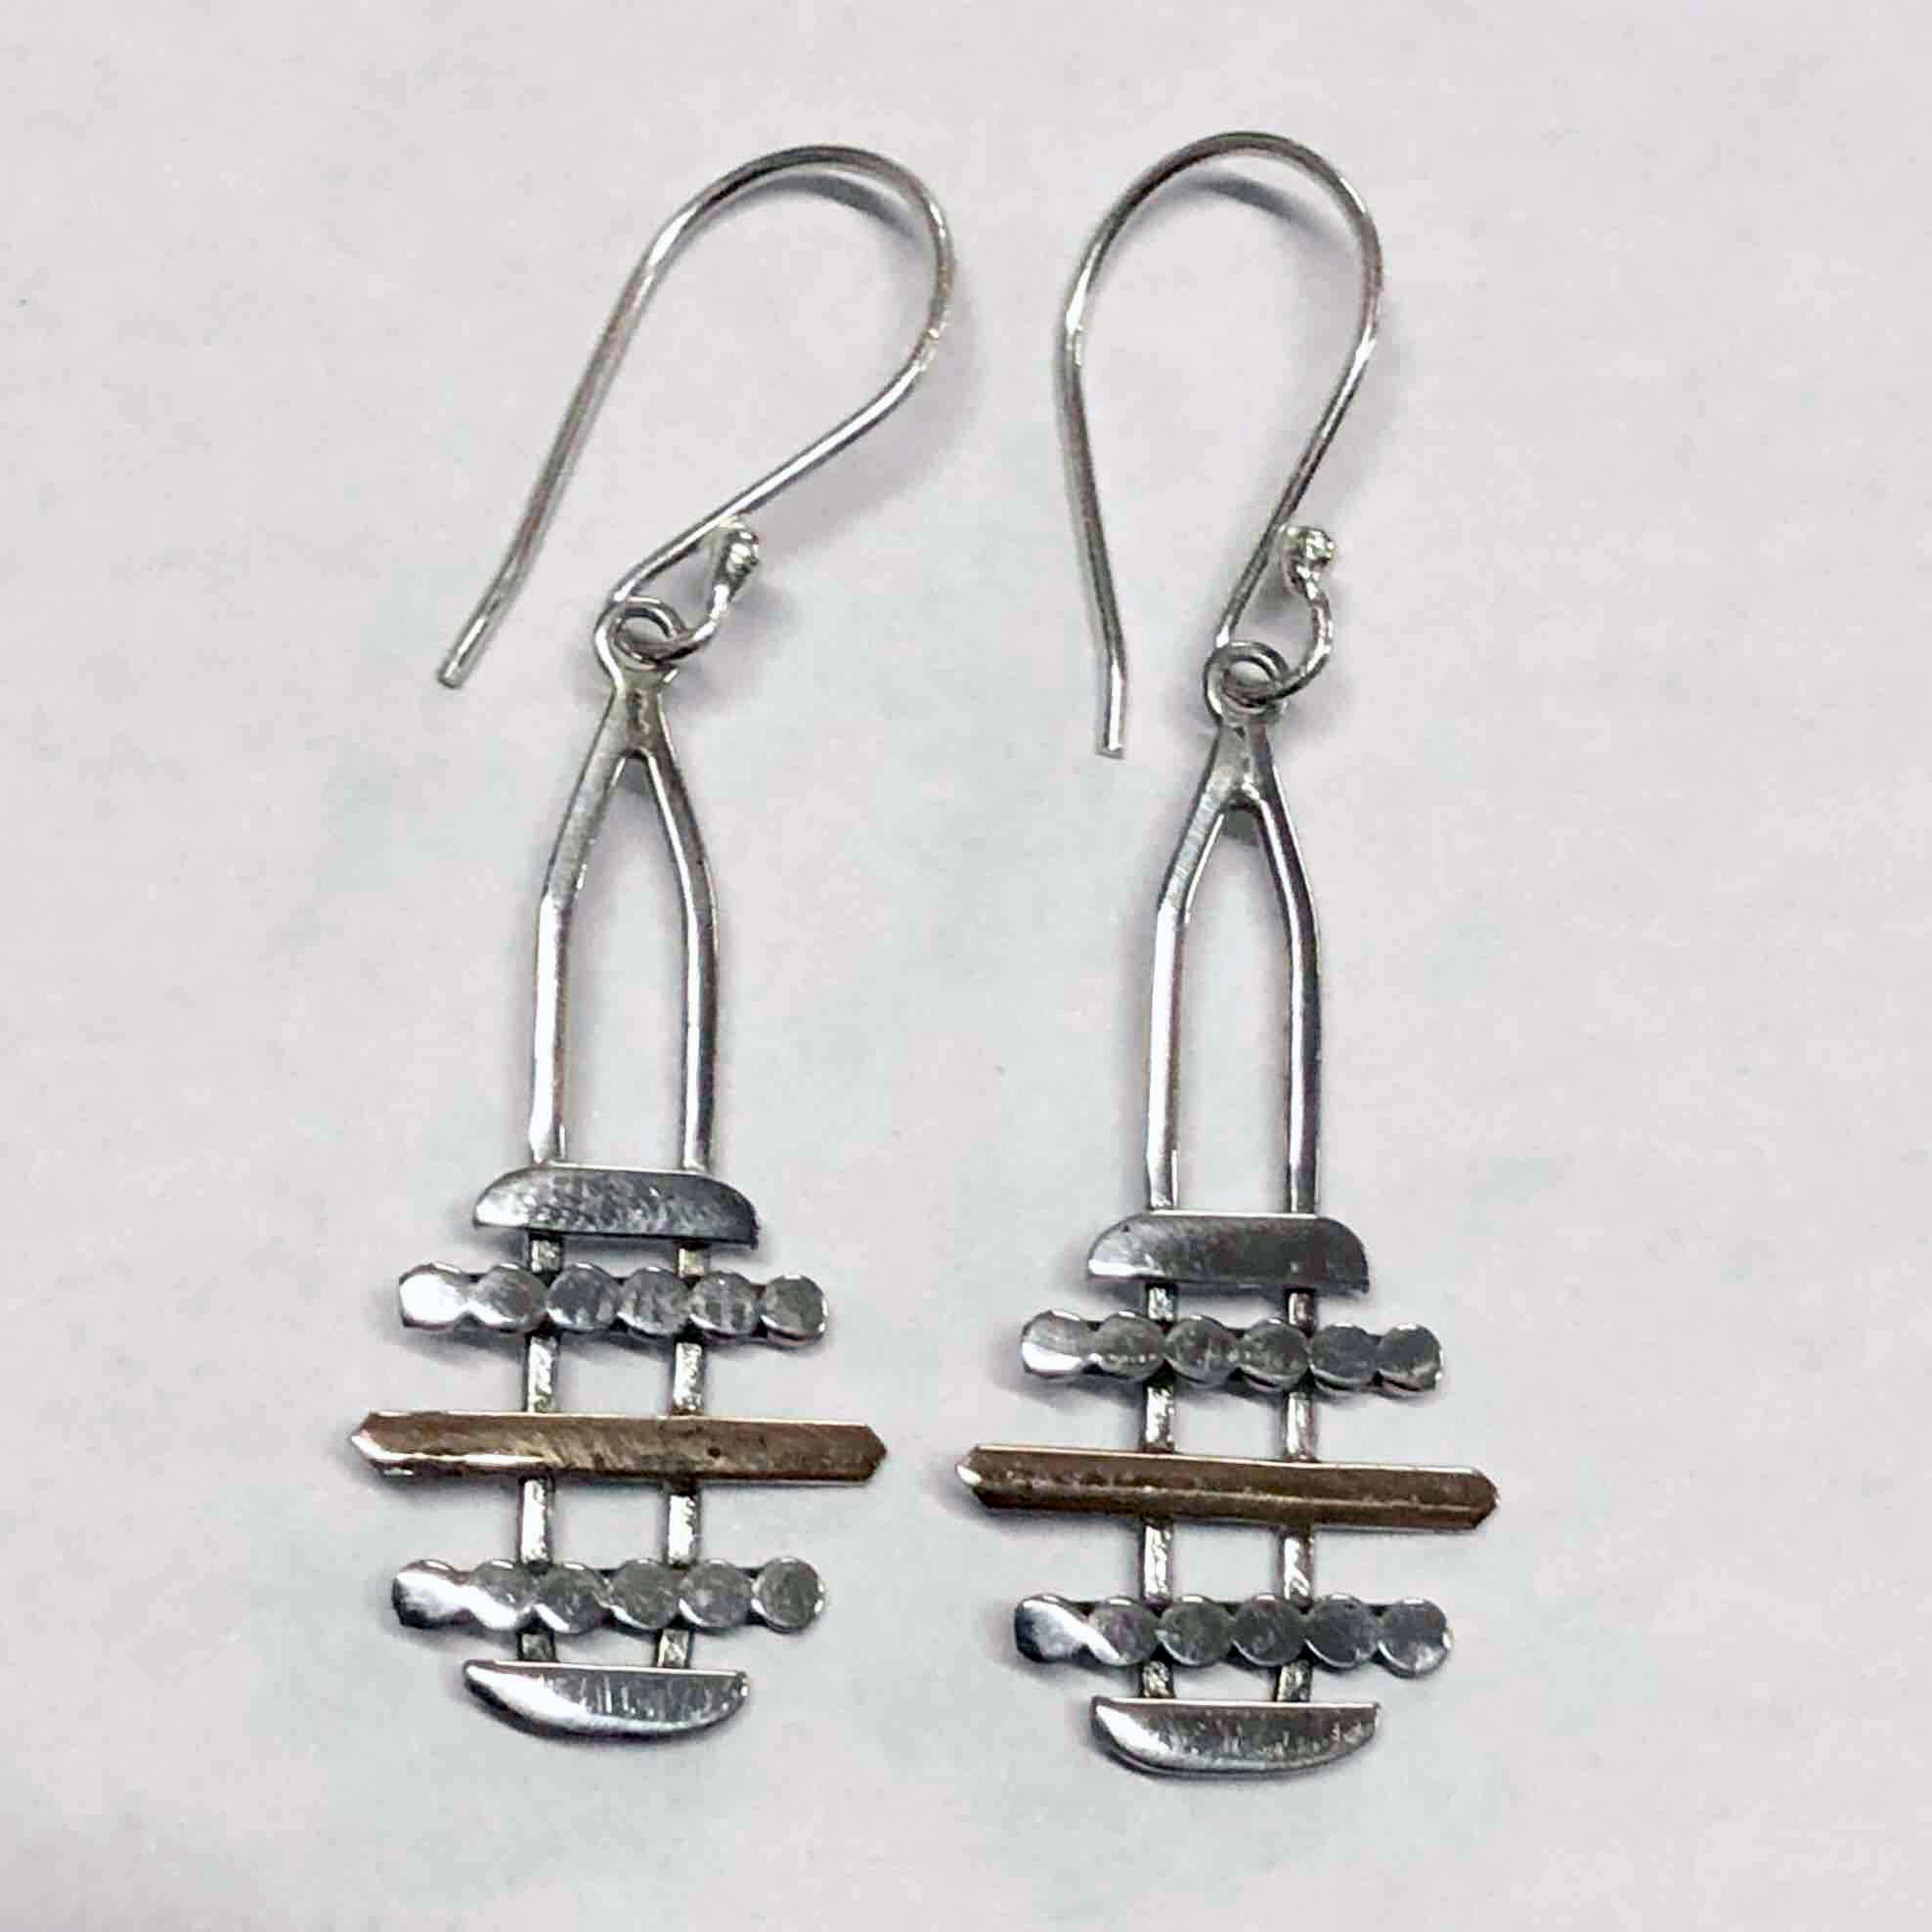 HANDMADE 925 BALI SILVER EARRINGS WITH 18KT GOLD ACCENT